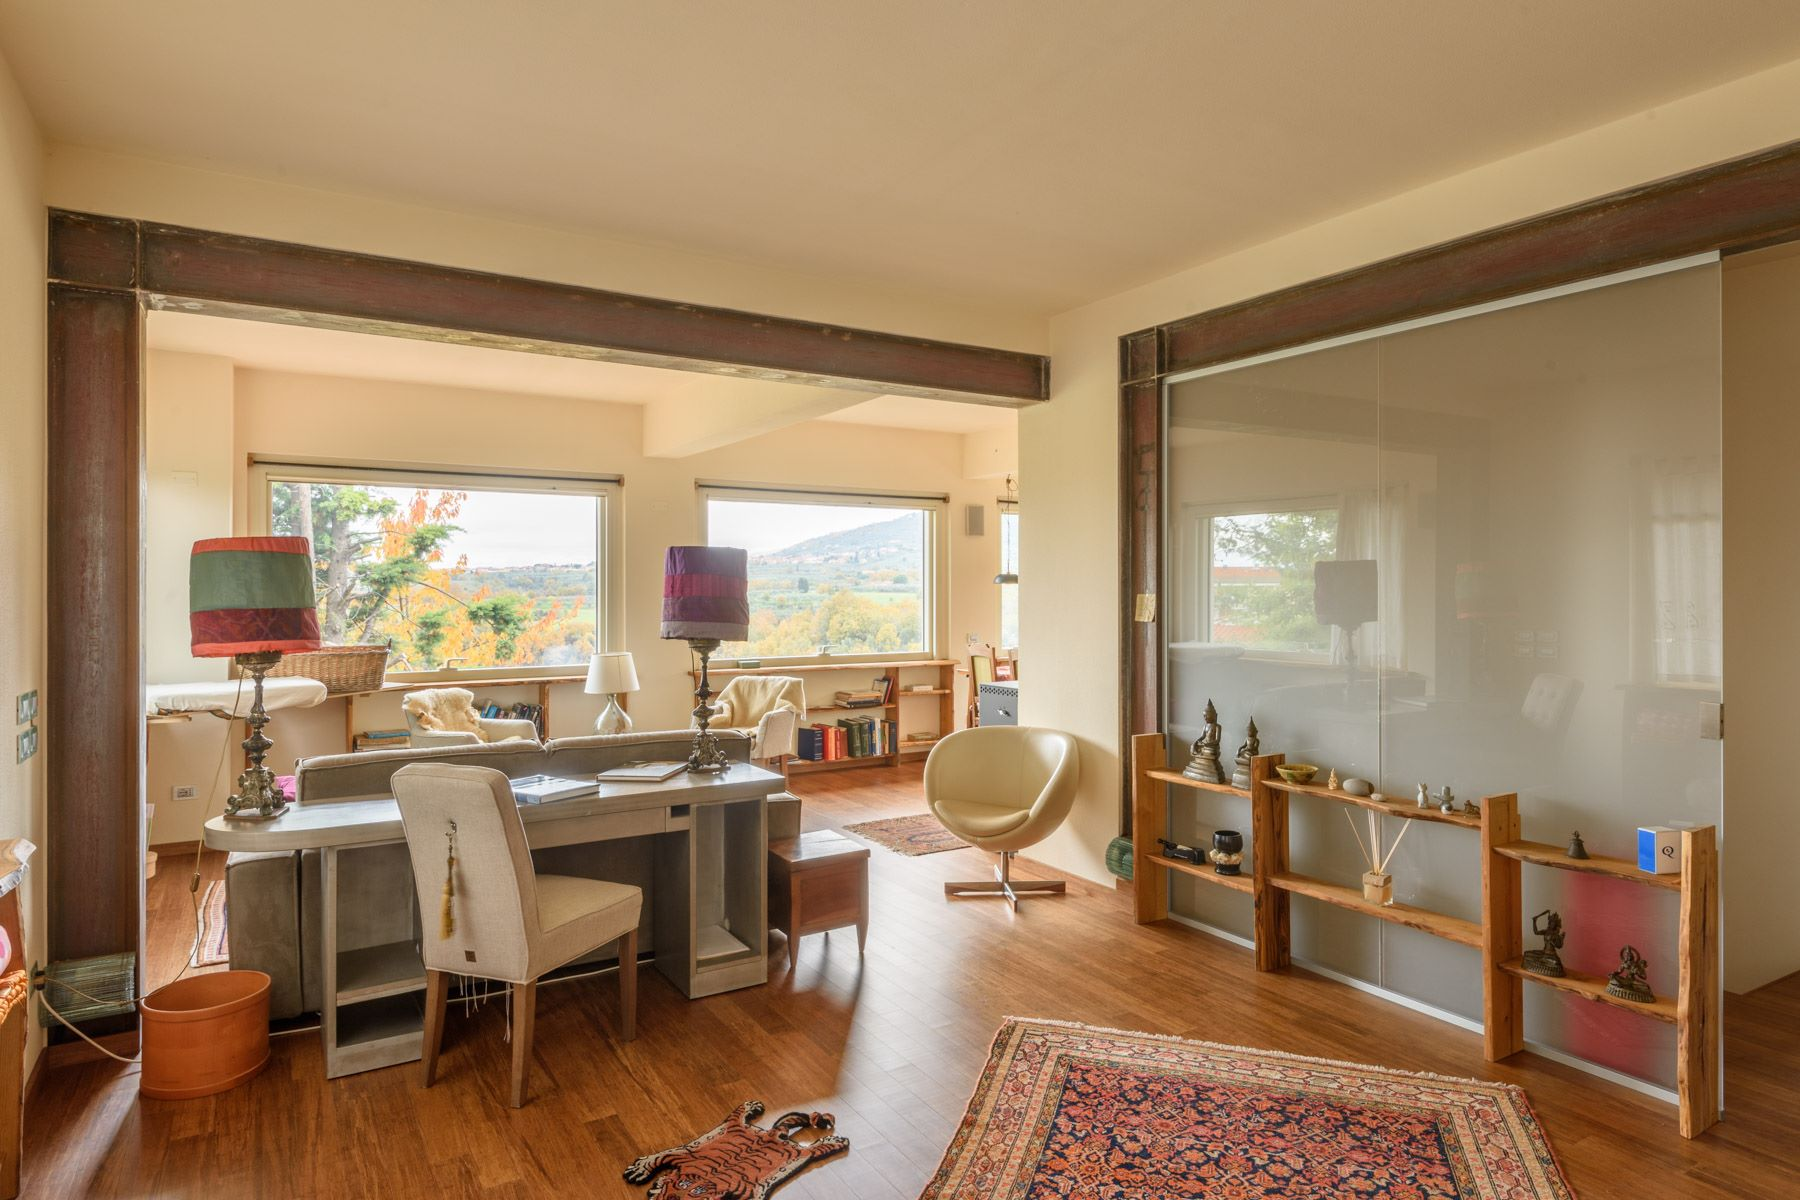 Additional photo for property listing at Marvelous small villa eco-sustainable in the heart of Tuscan countryside Via Venezia Other Arezzo, Arezzo 52026 Italien